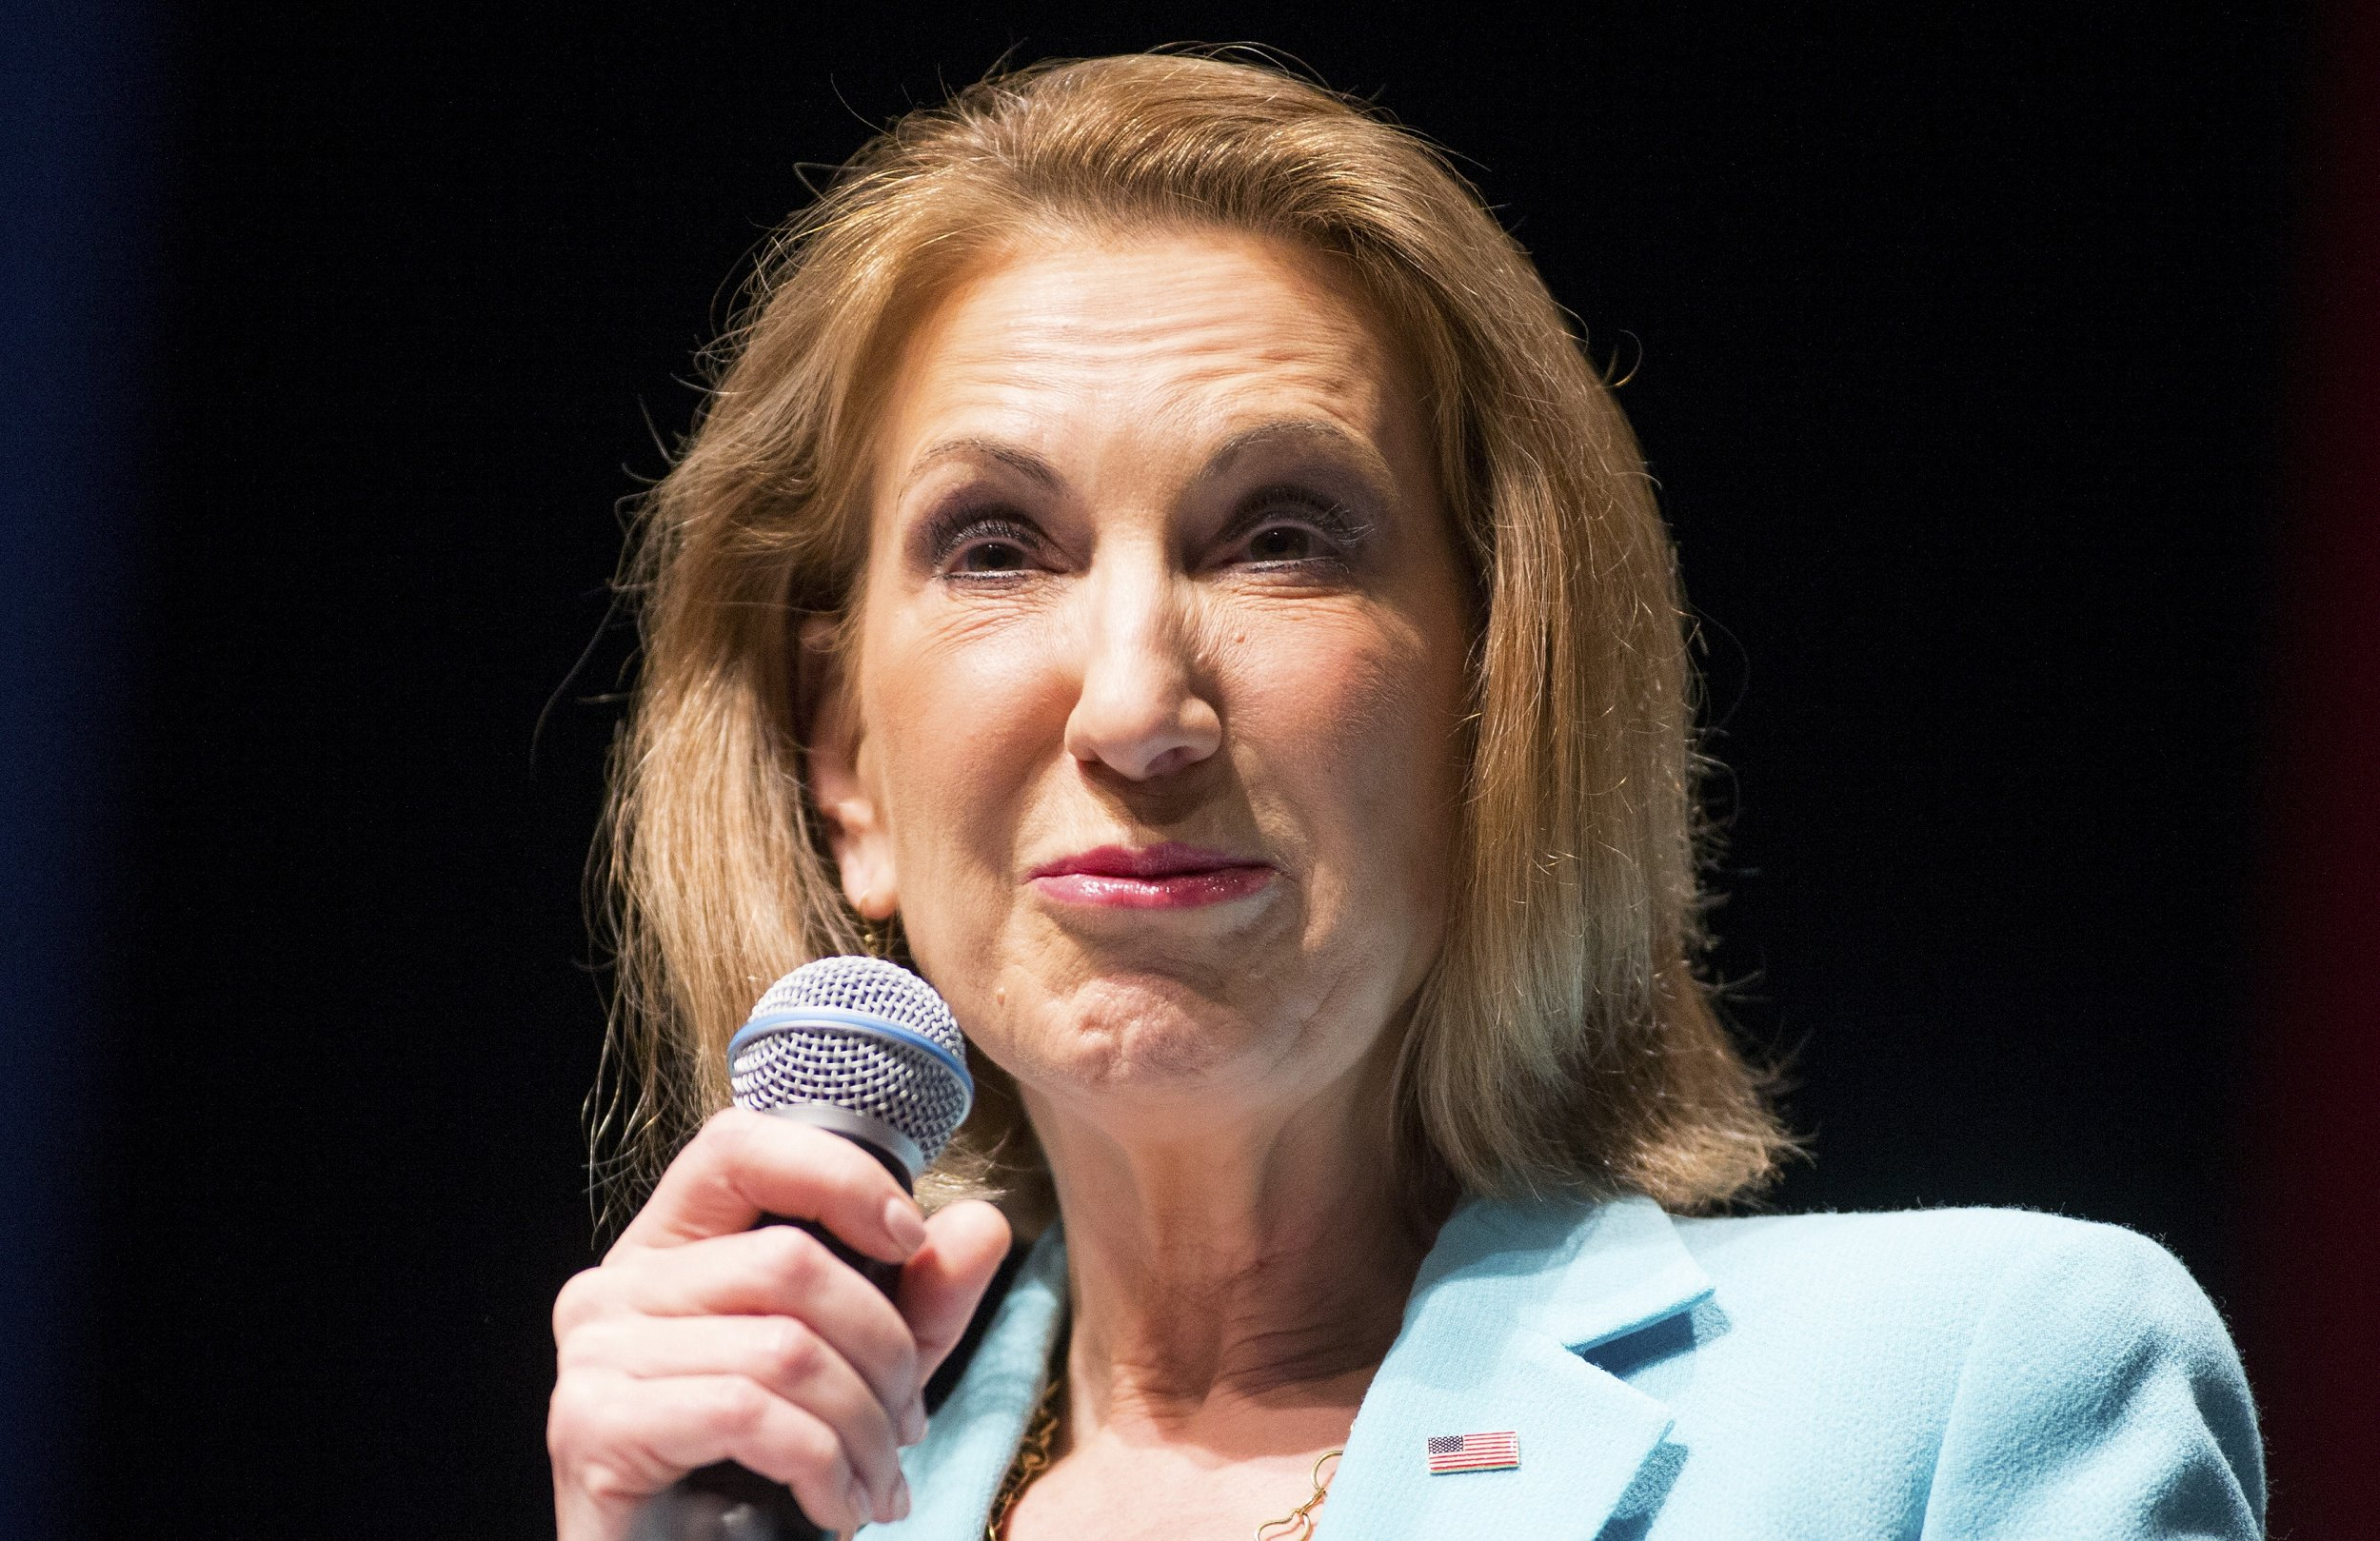 how tall is carly fiorina